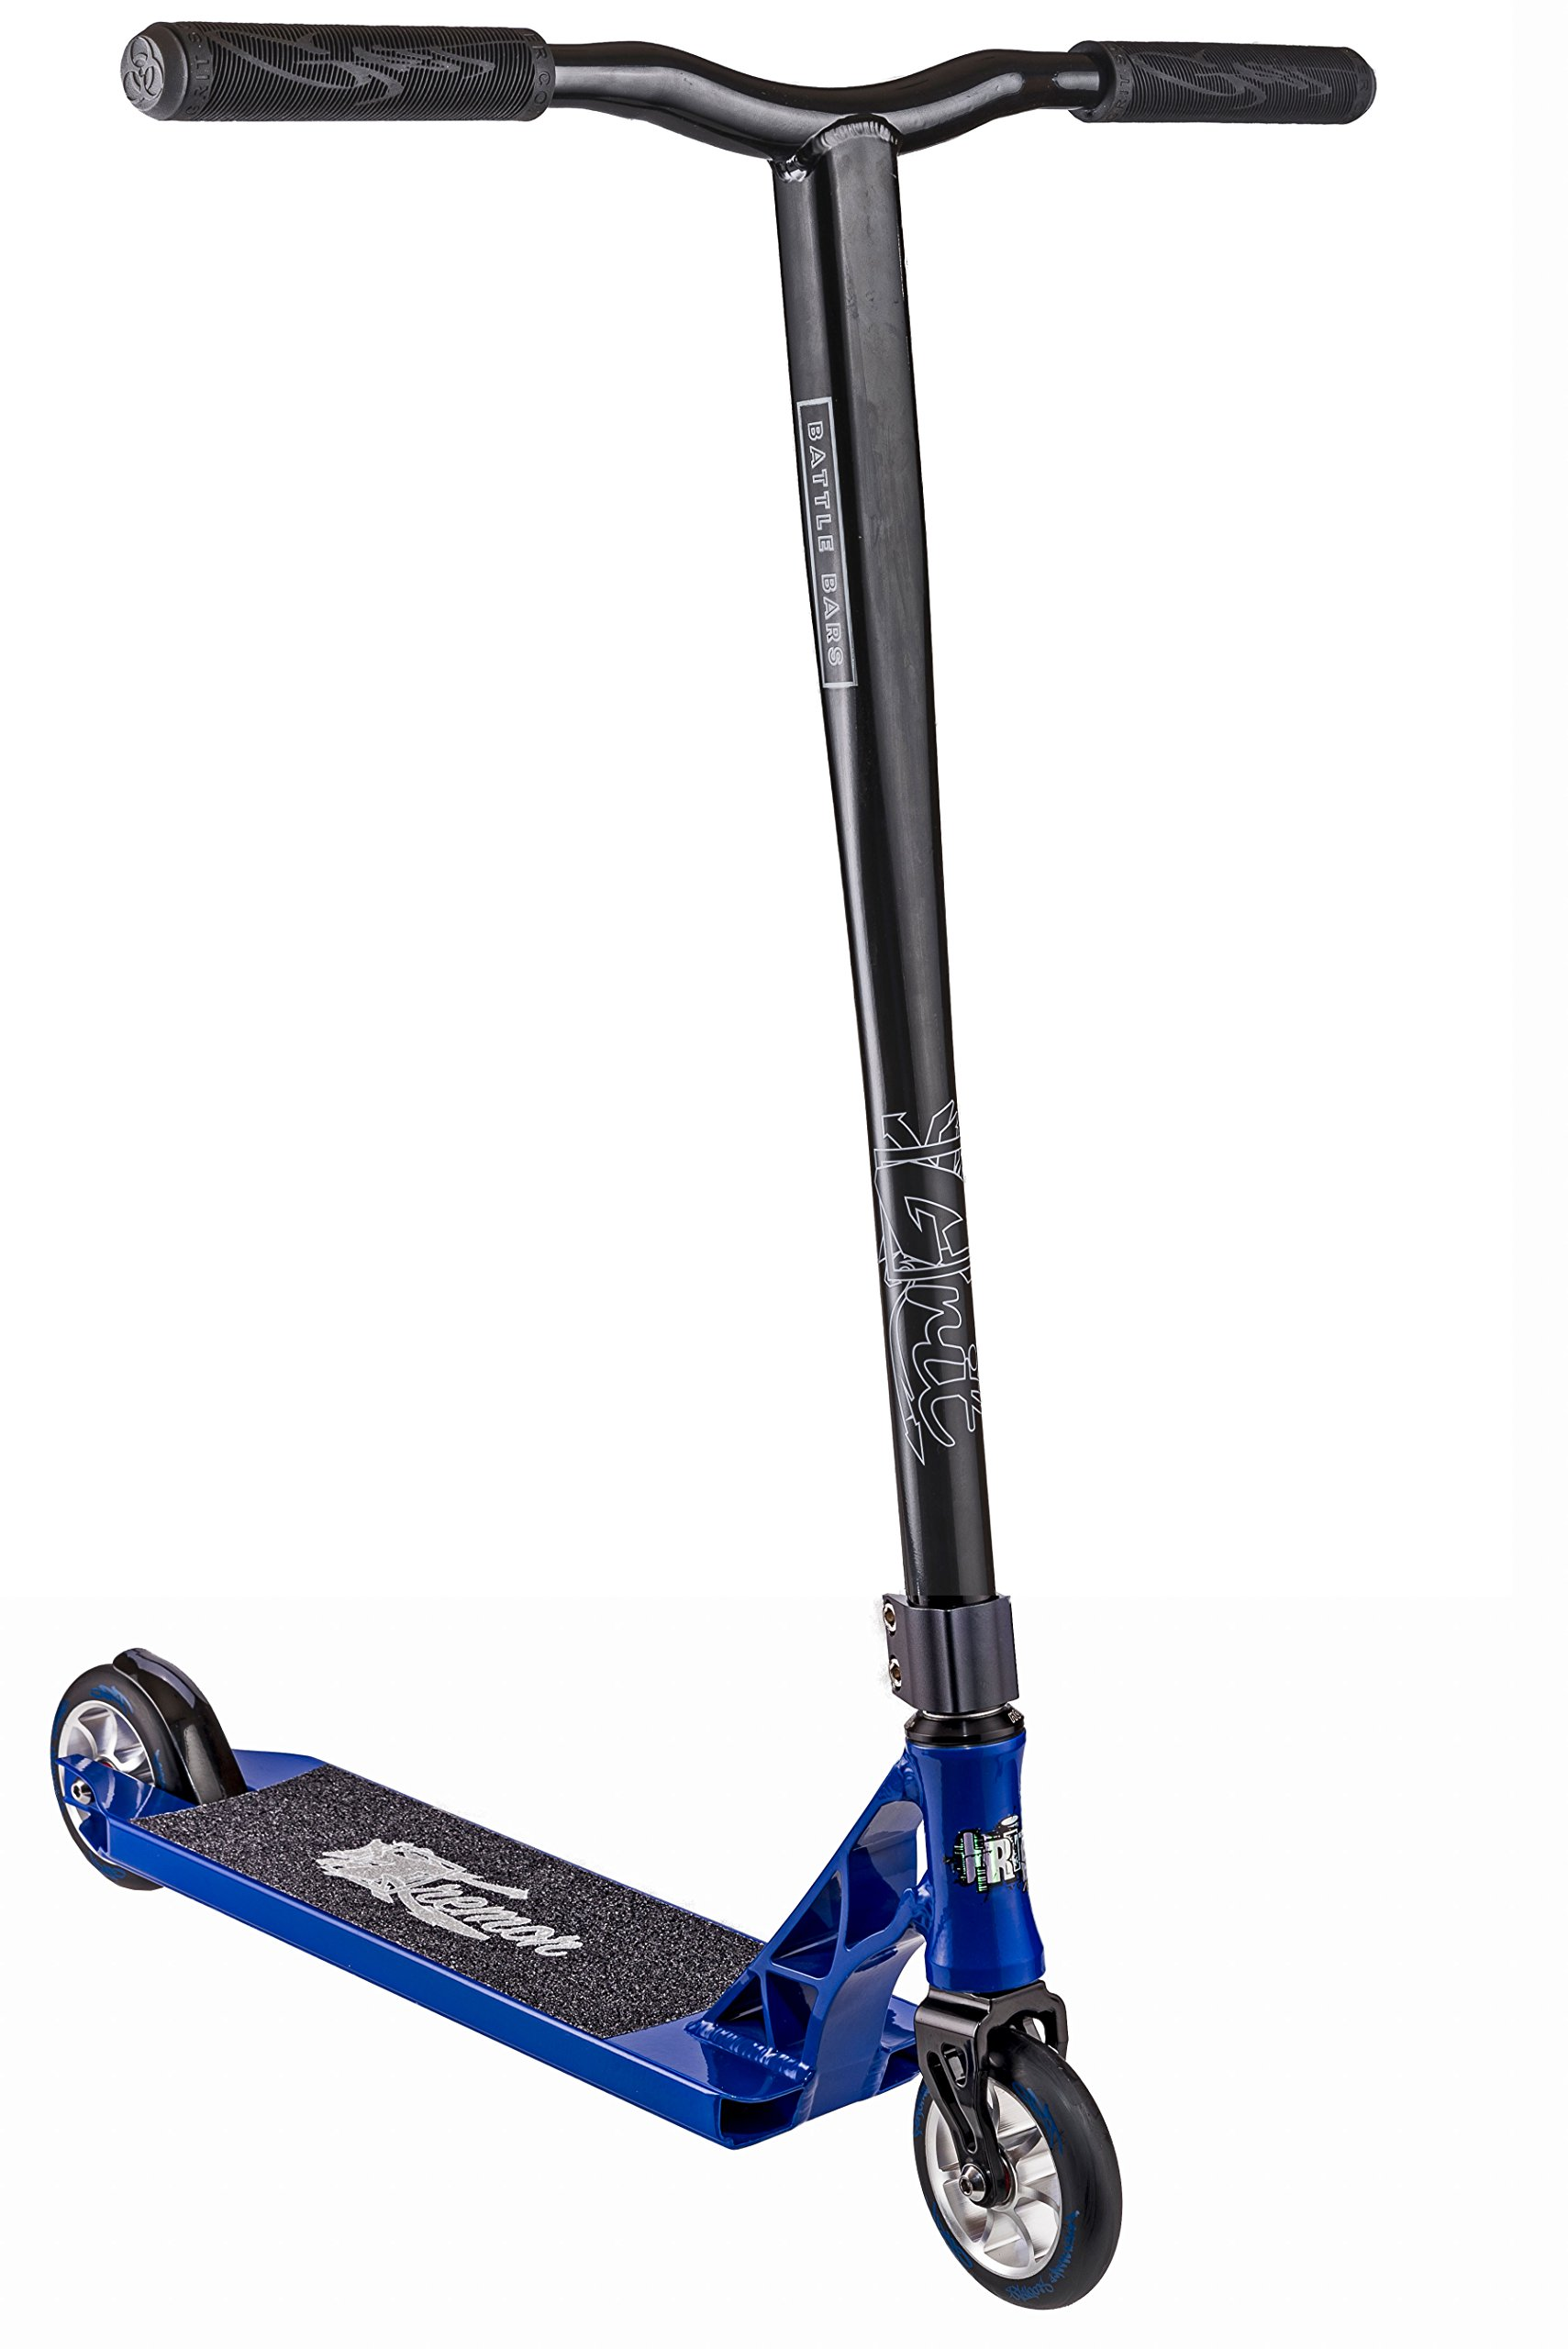 Grit Tremor Pro Scooter (Blue/Black Limited Edition) by Grit Scooters